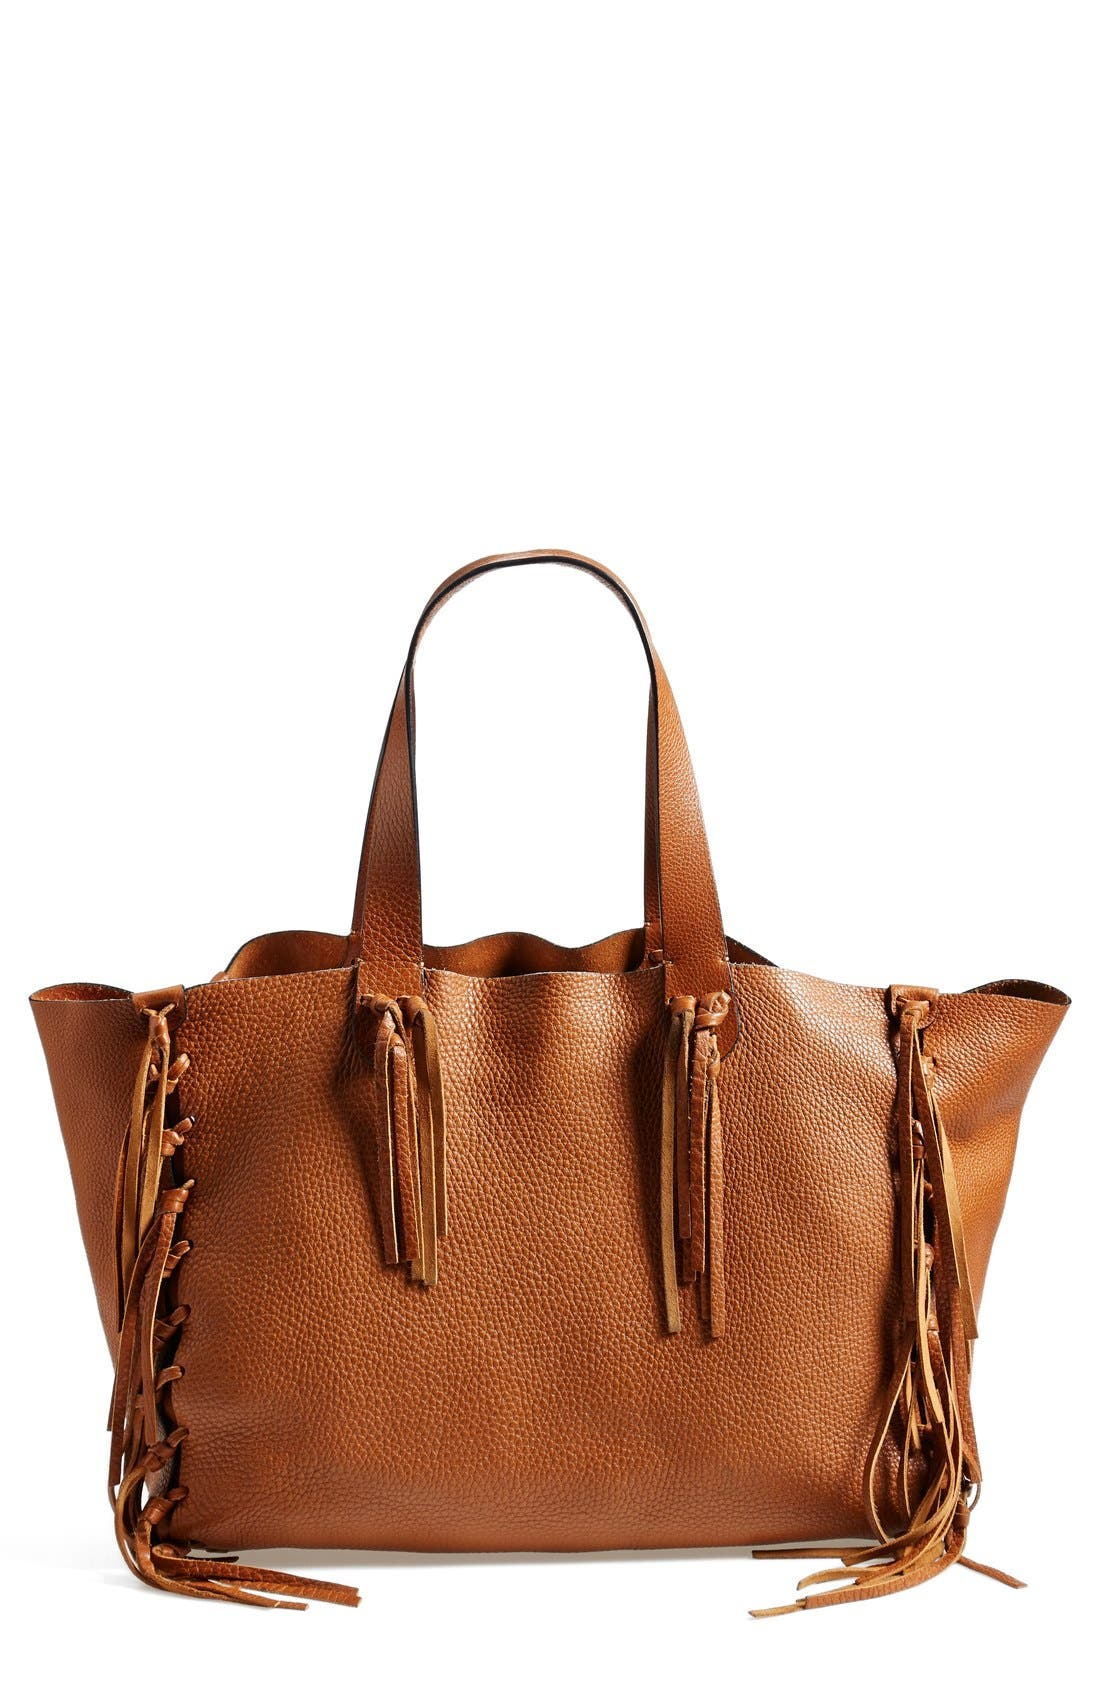 Alternate Image 1 Selected - Valentino 'Crockee' Fringed Leather Tote